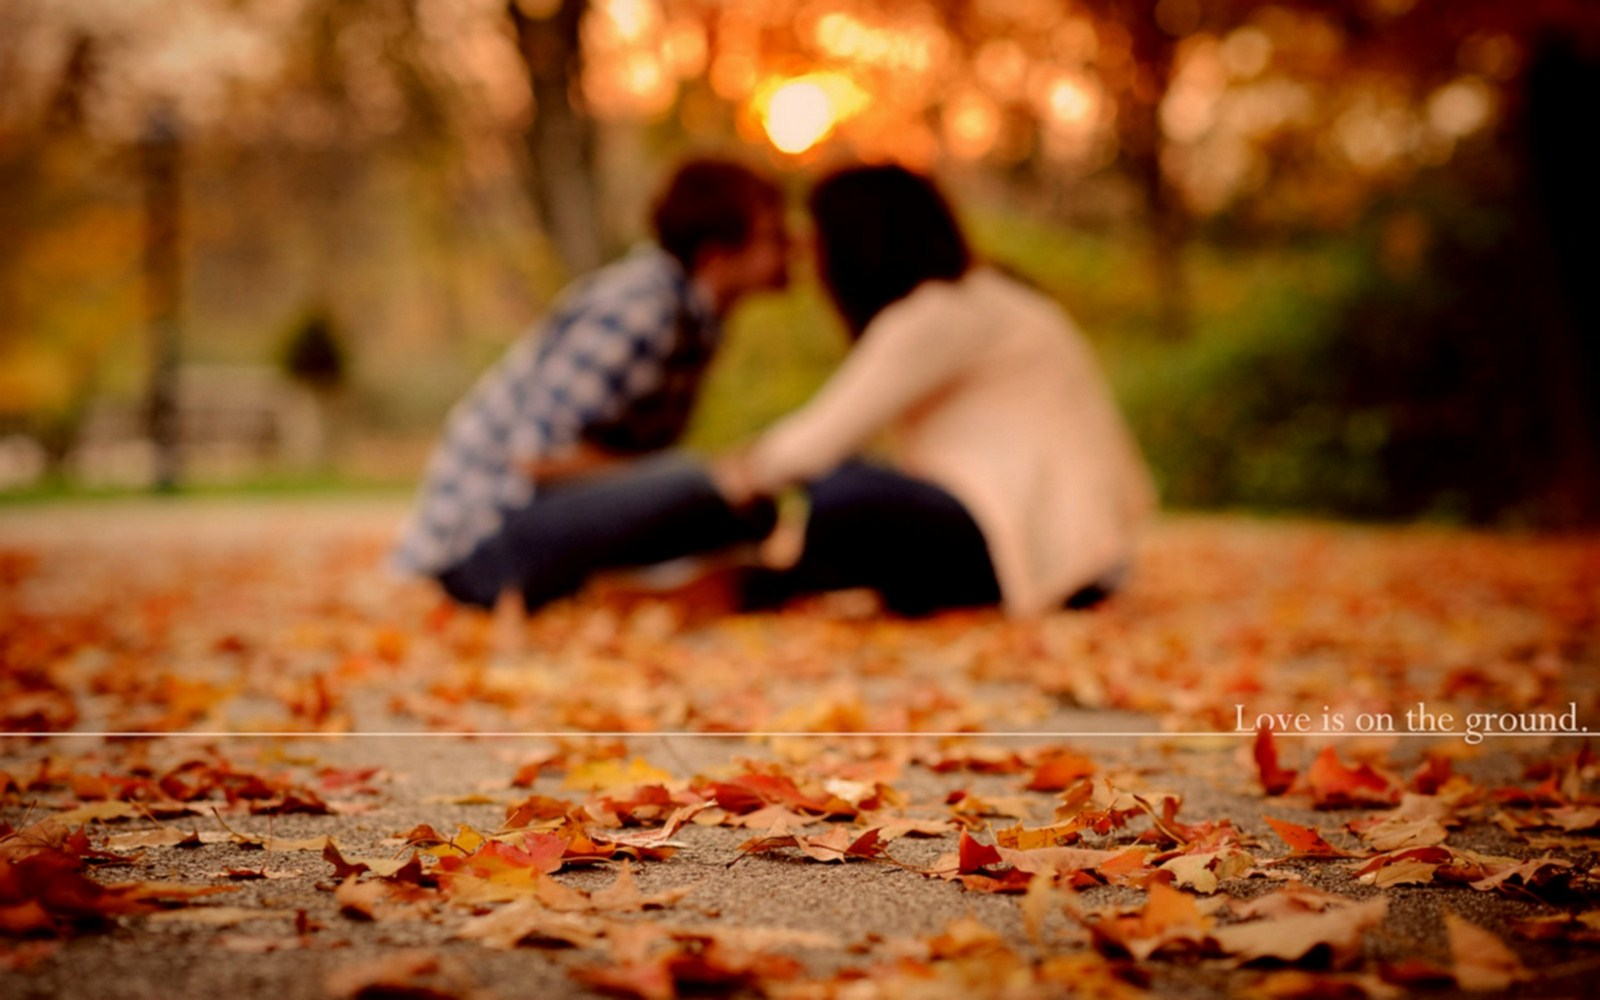 Romantic Love Girl Wallpaper : Mood Love couple Boy And Girl Autumn Leaf Park Photo HD Wallpaper Love Wallpapers Romantic ...